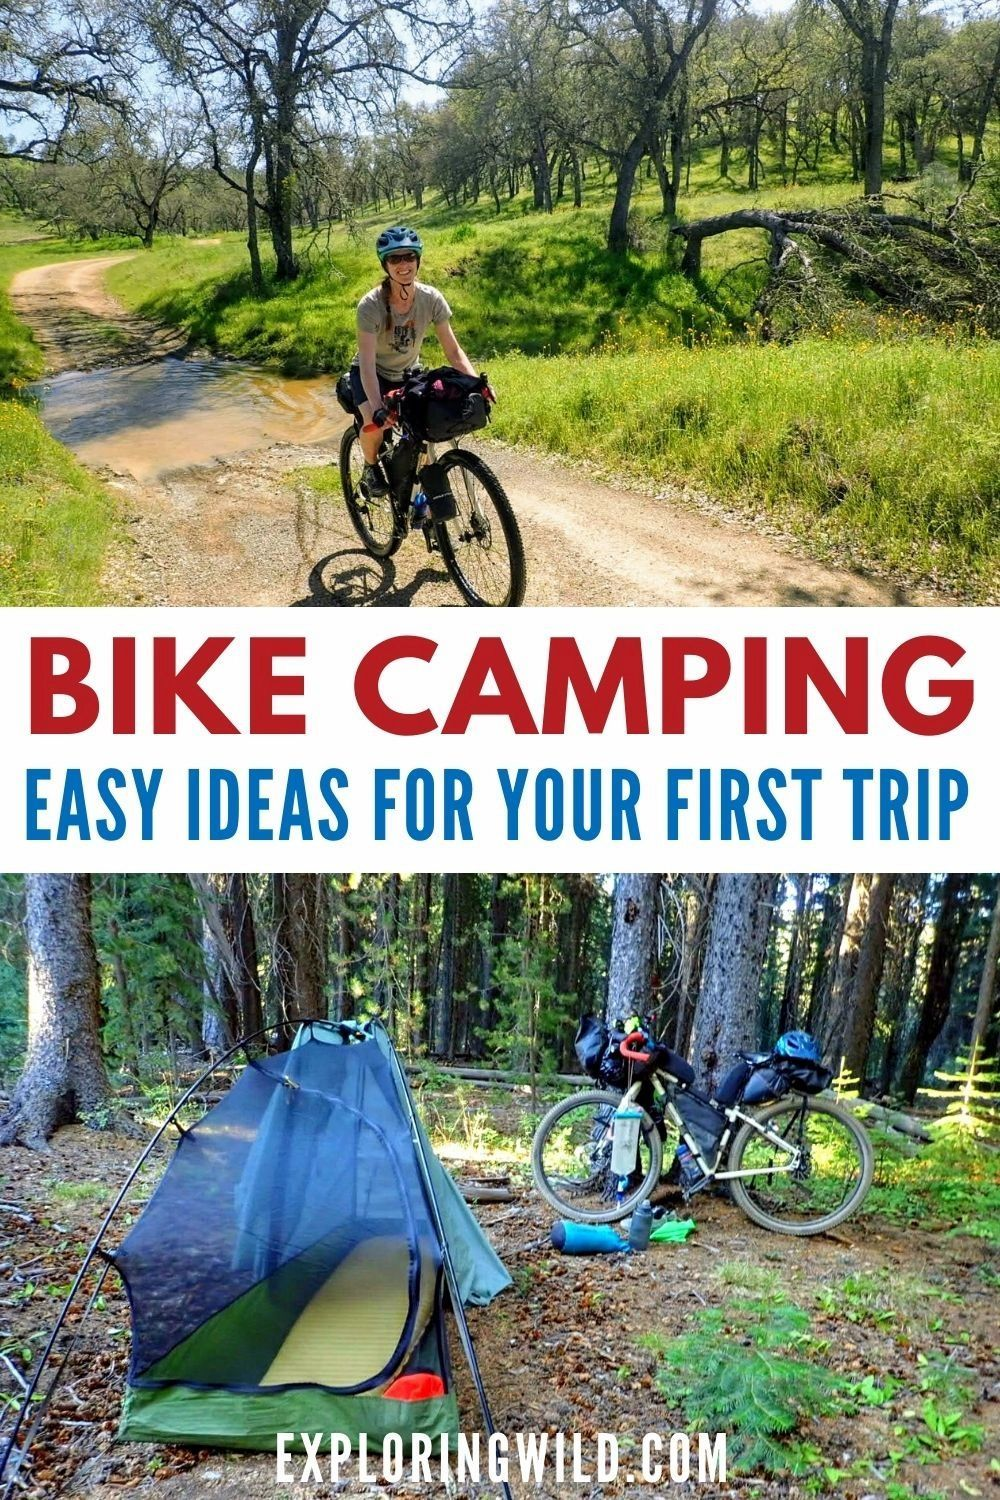 Bike Camping: Easy Ideas for Your First Trip